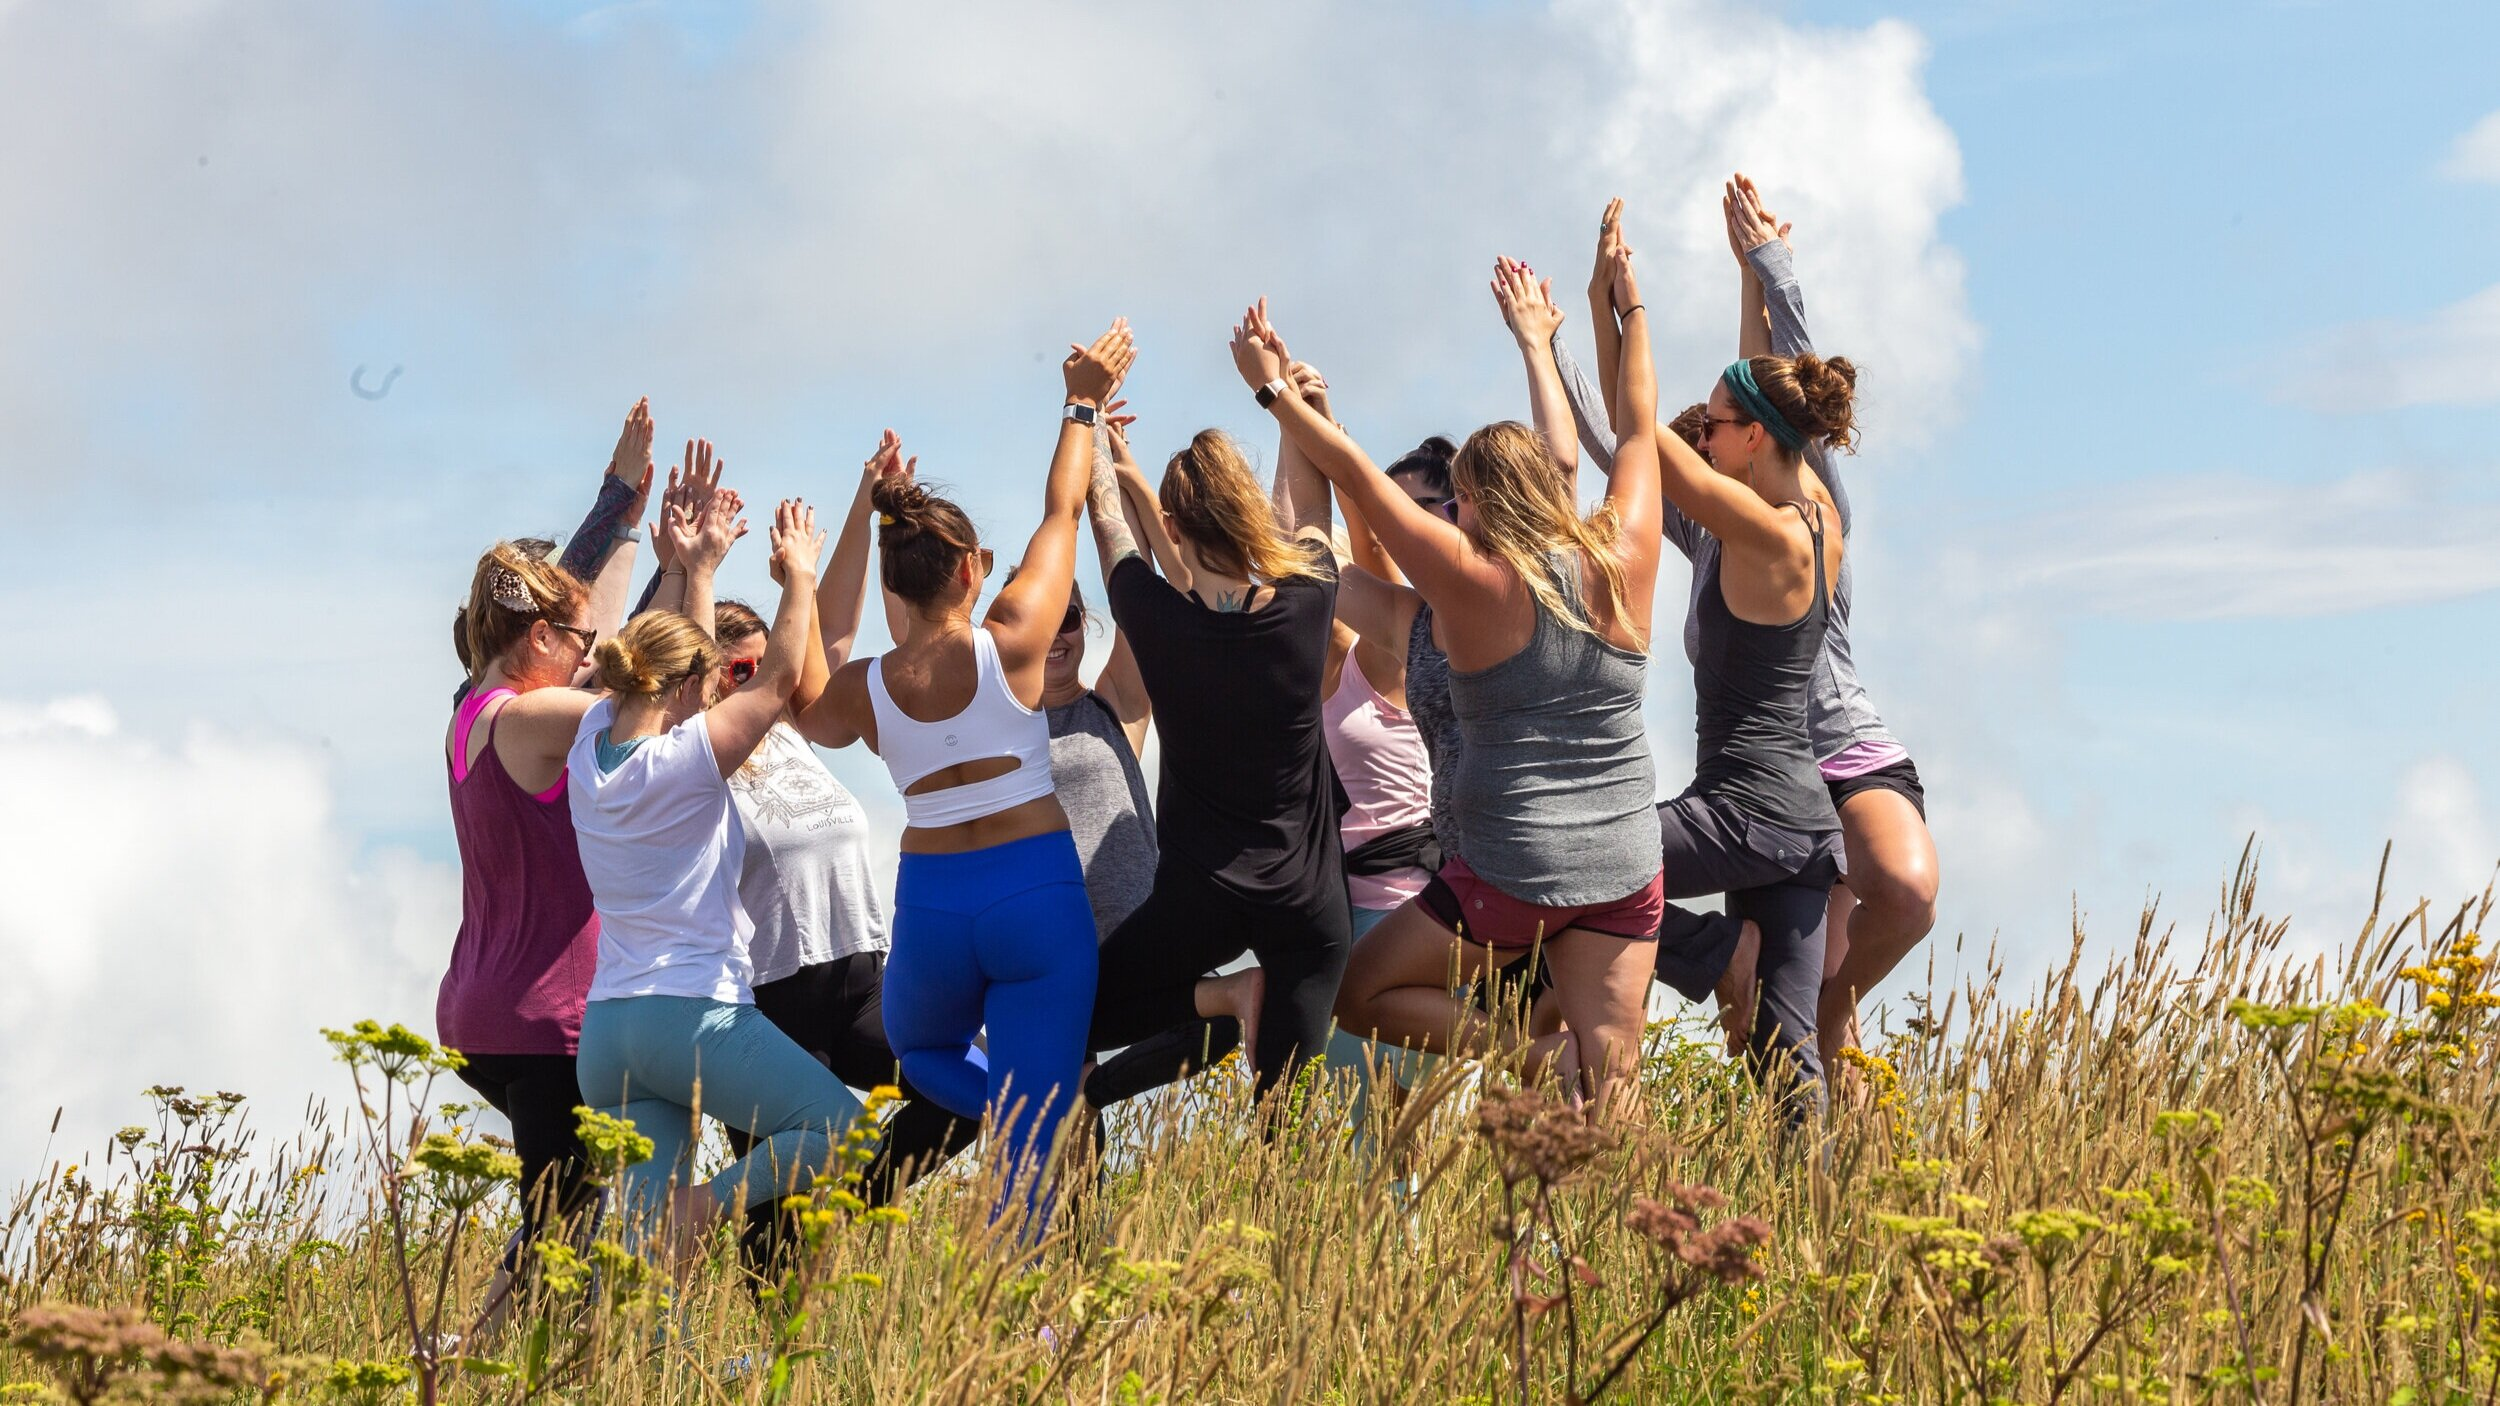 Yoga Hike in Asheville - Bachelorette Party